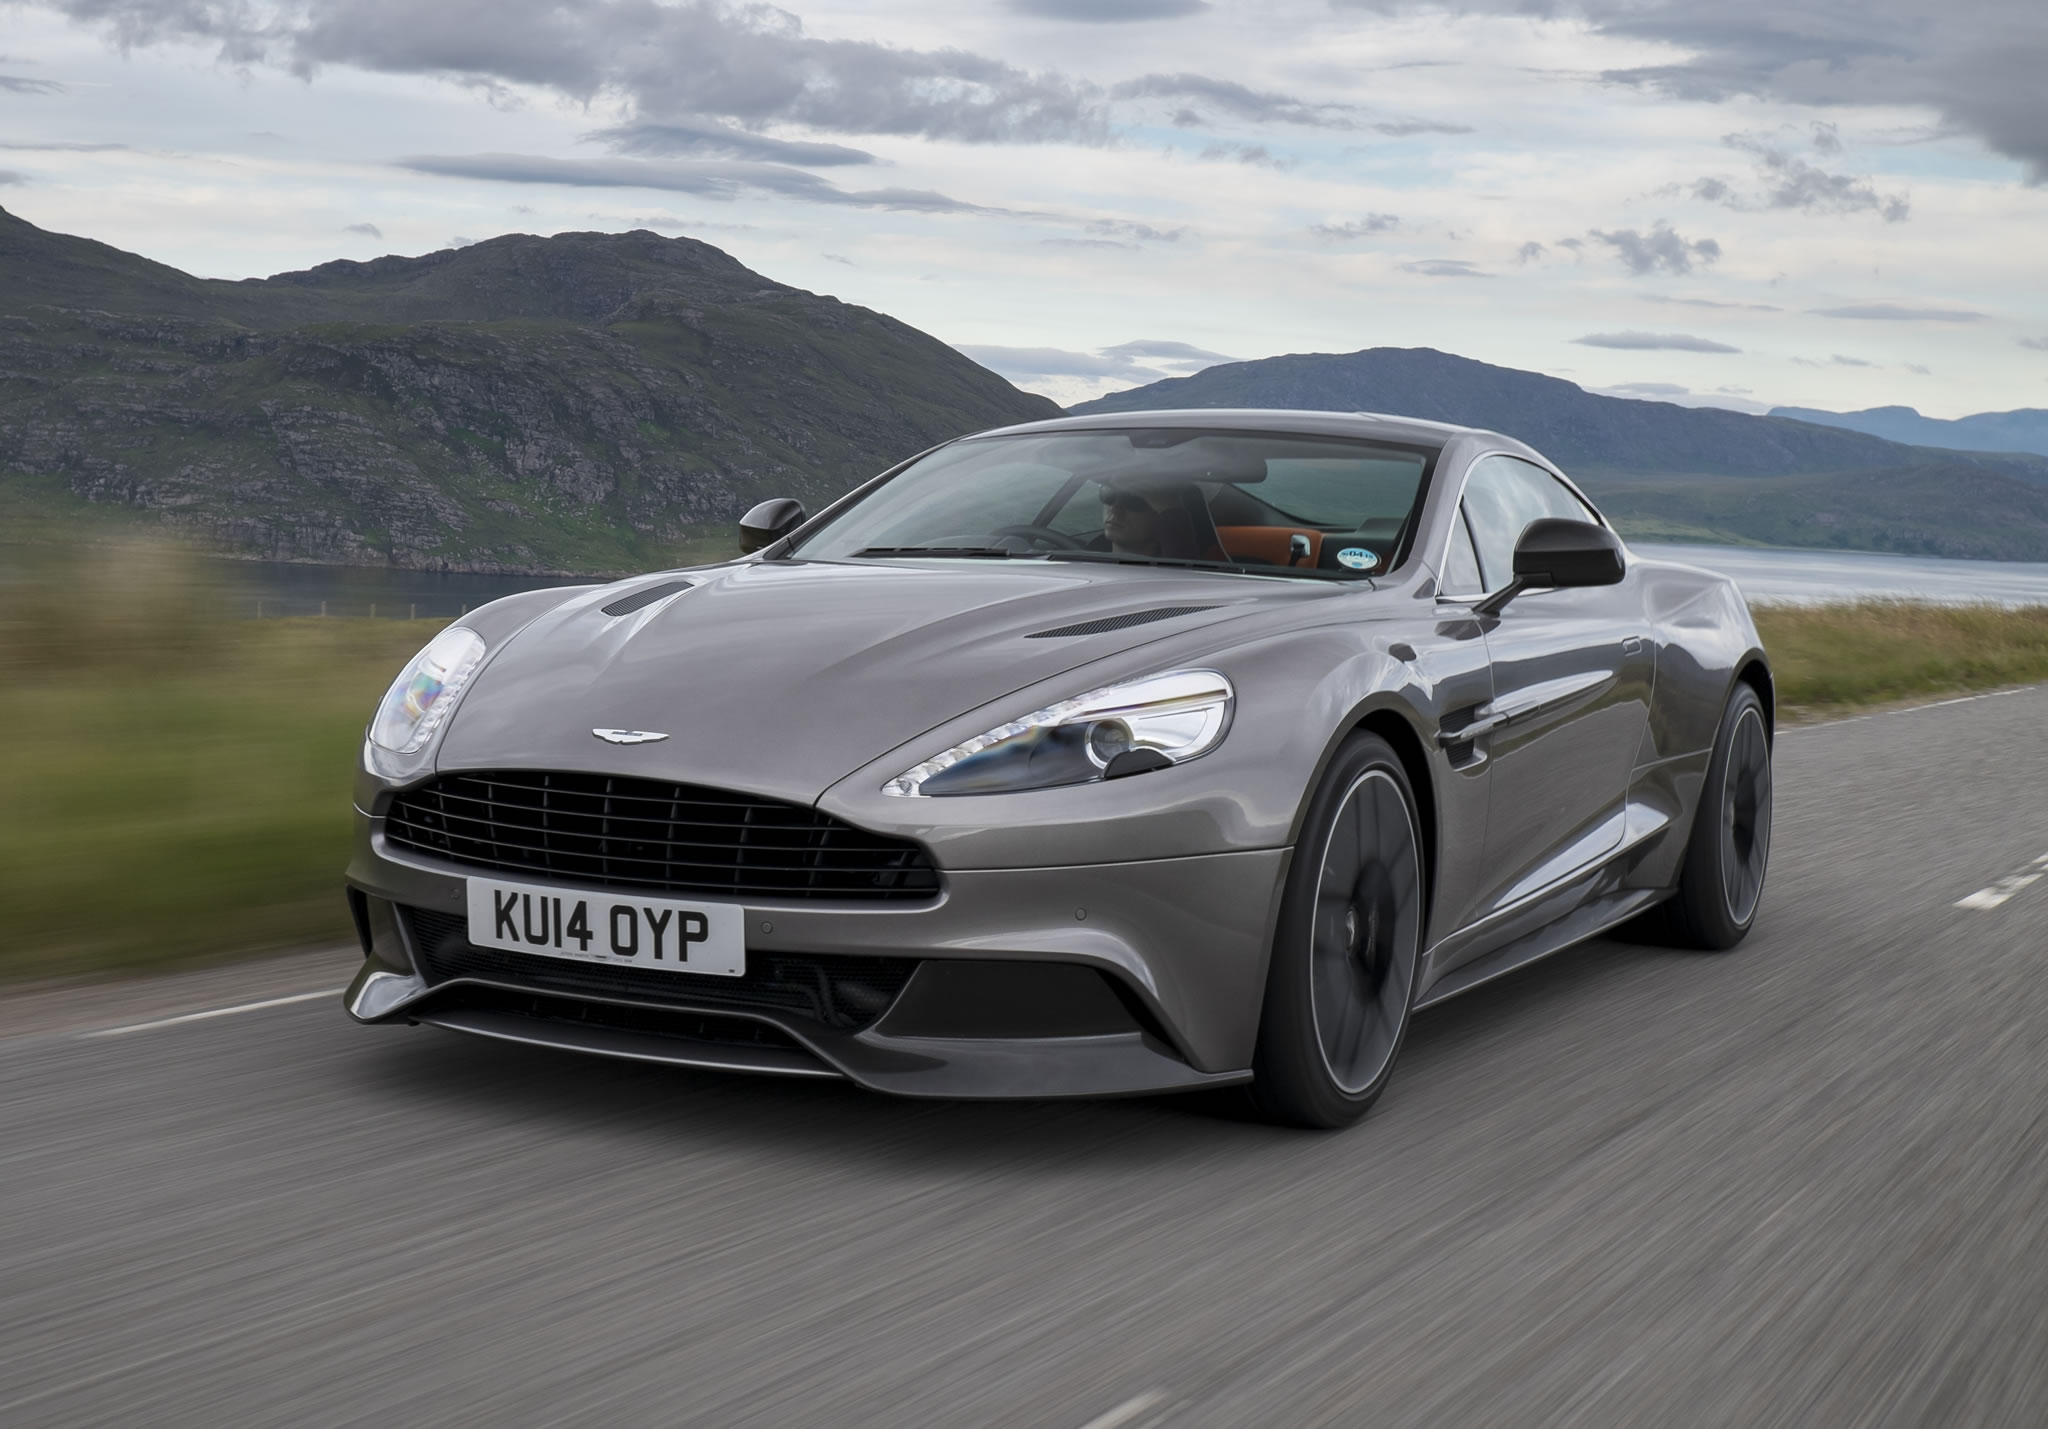 2015 aston martin vanquish - front photo, tungsten silver color